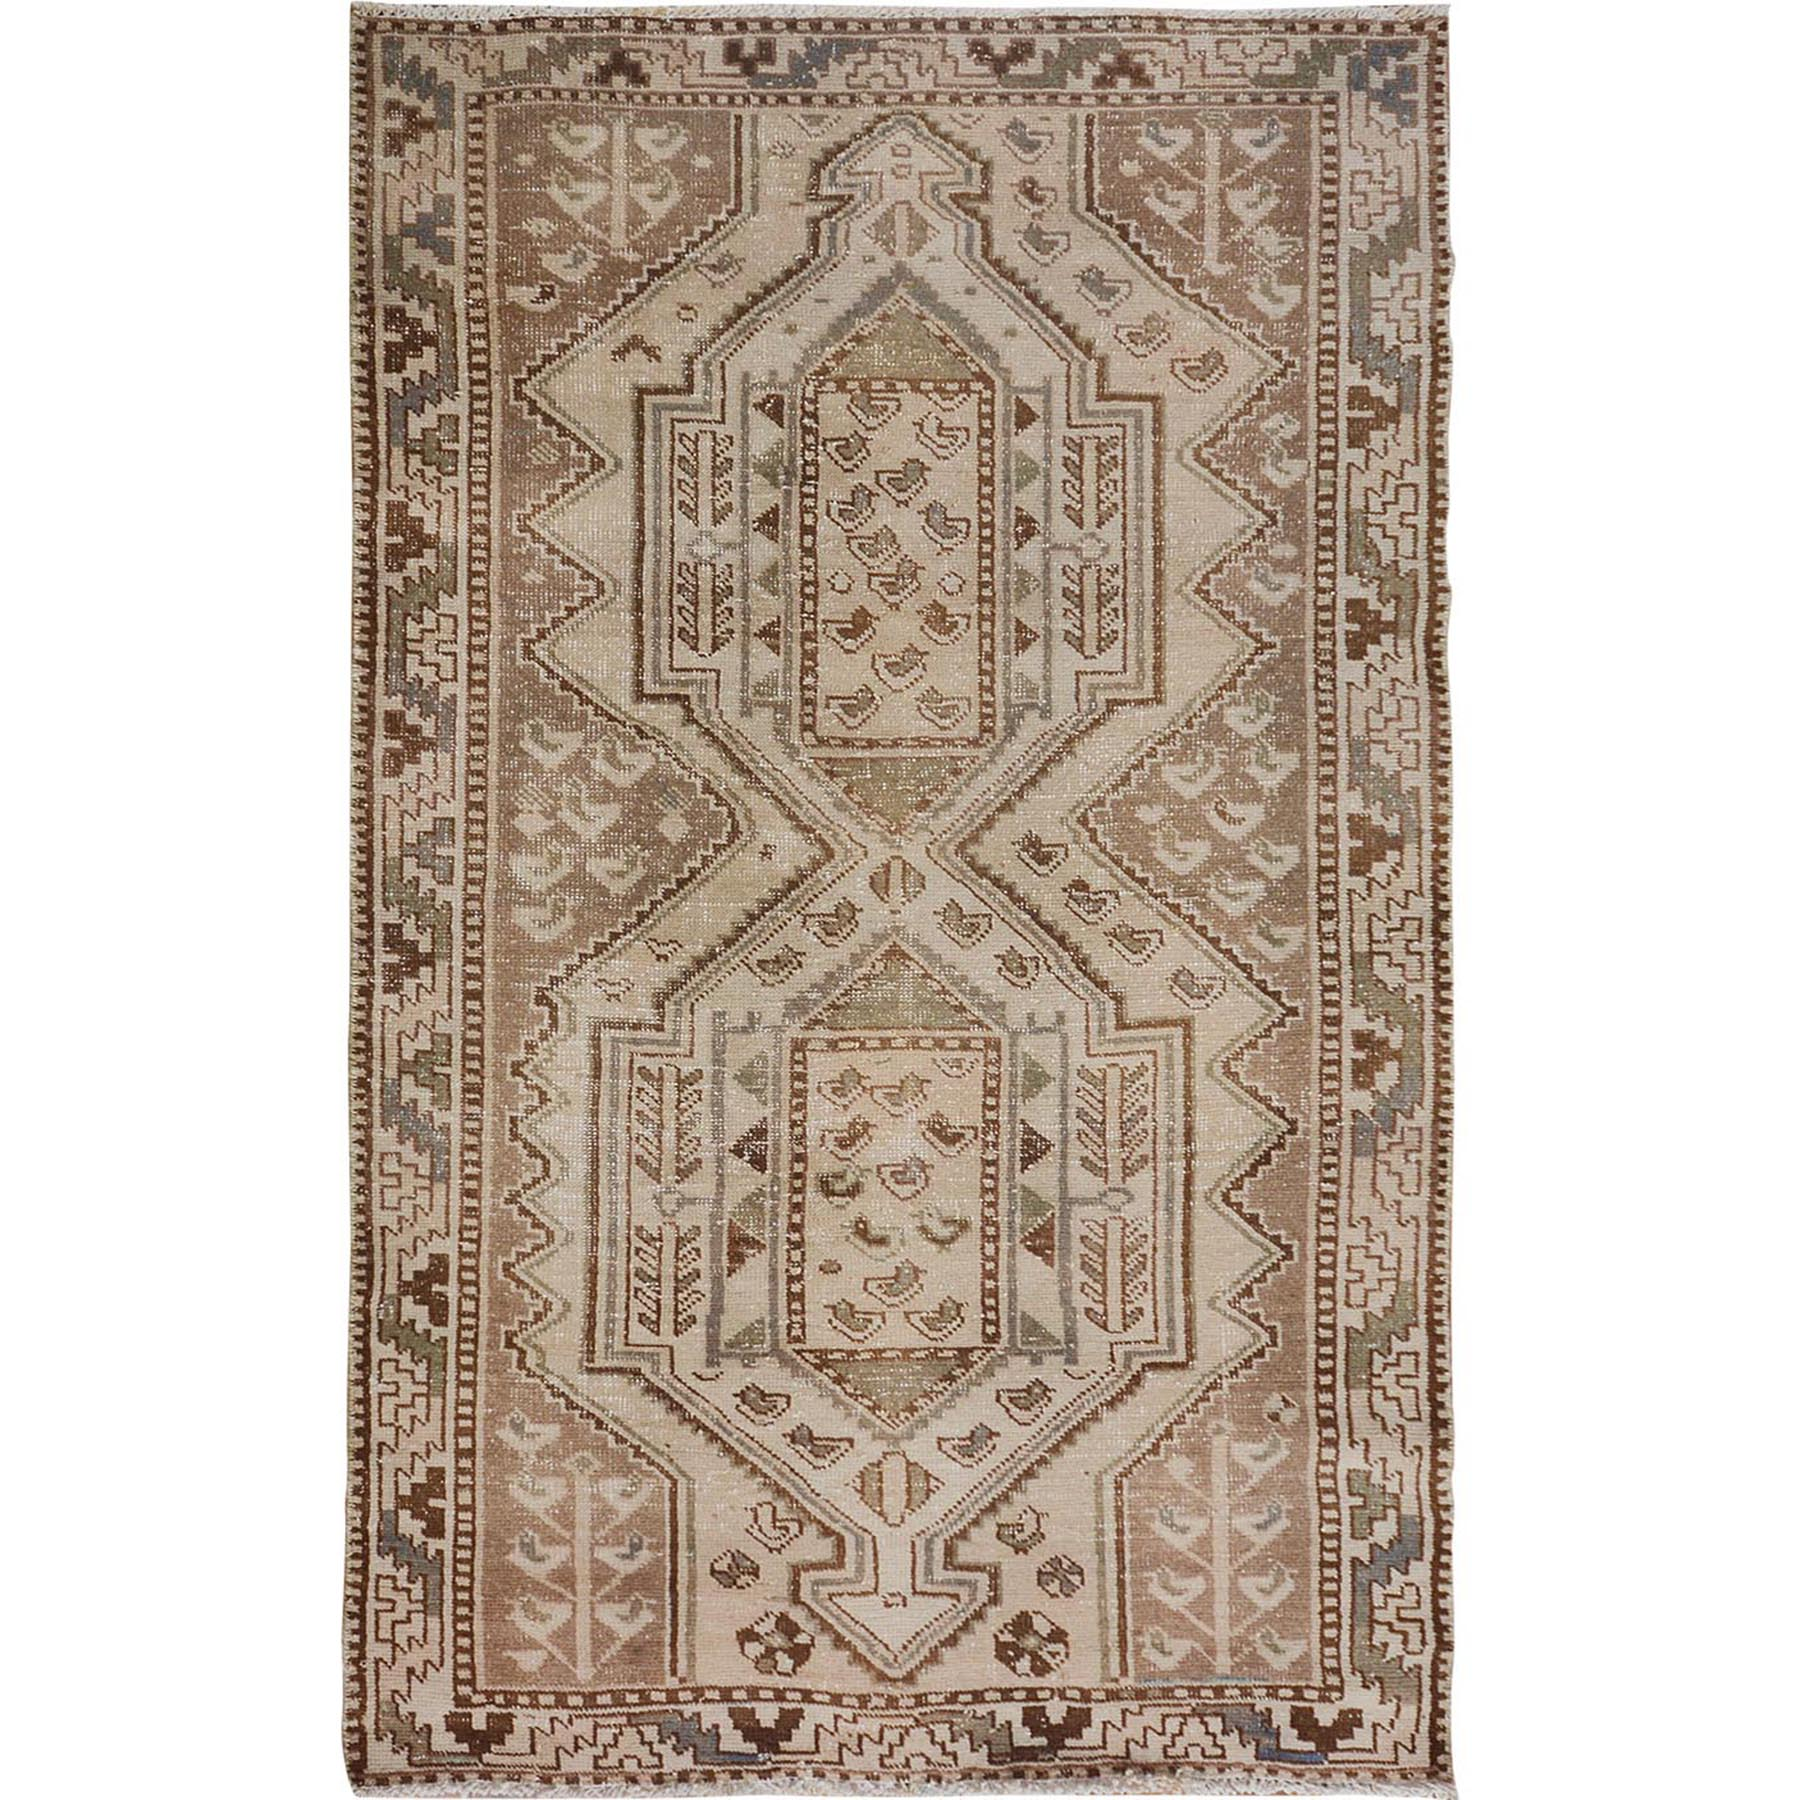 "4'1""x7'2"" Distressed Colors Vintage And Worn Down Persian Shiraz Pure Wool Hand Woven Oriental Rug"